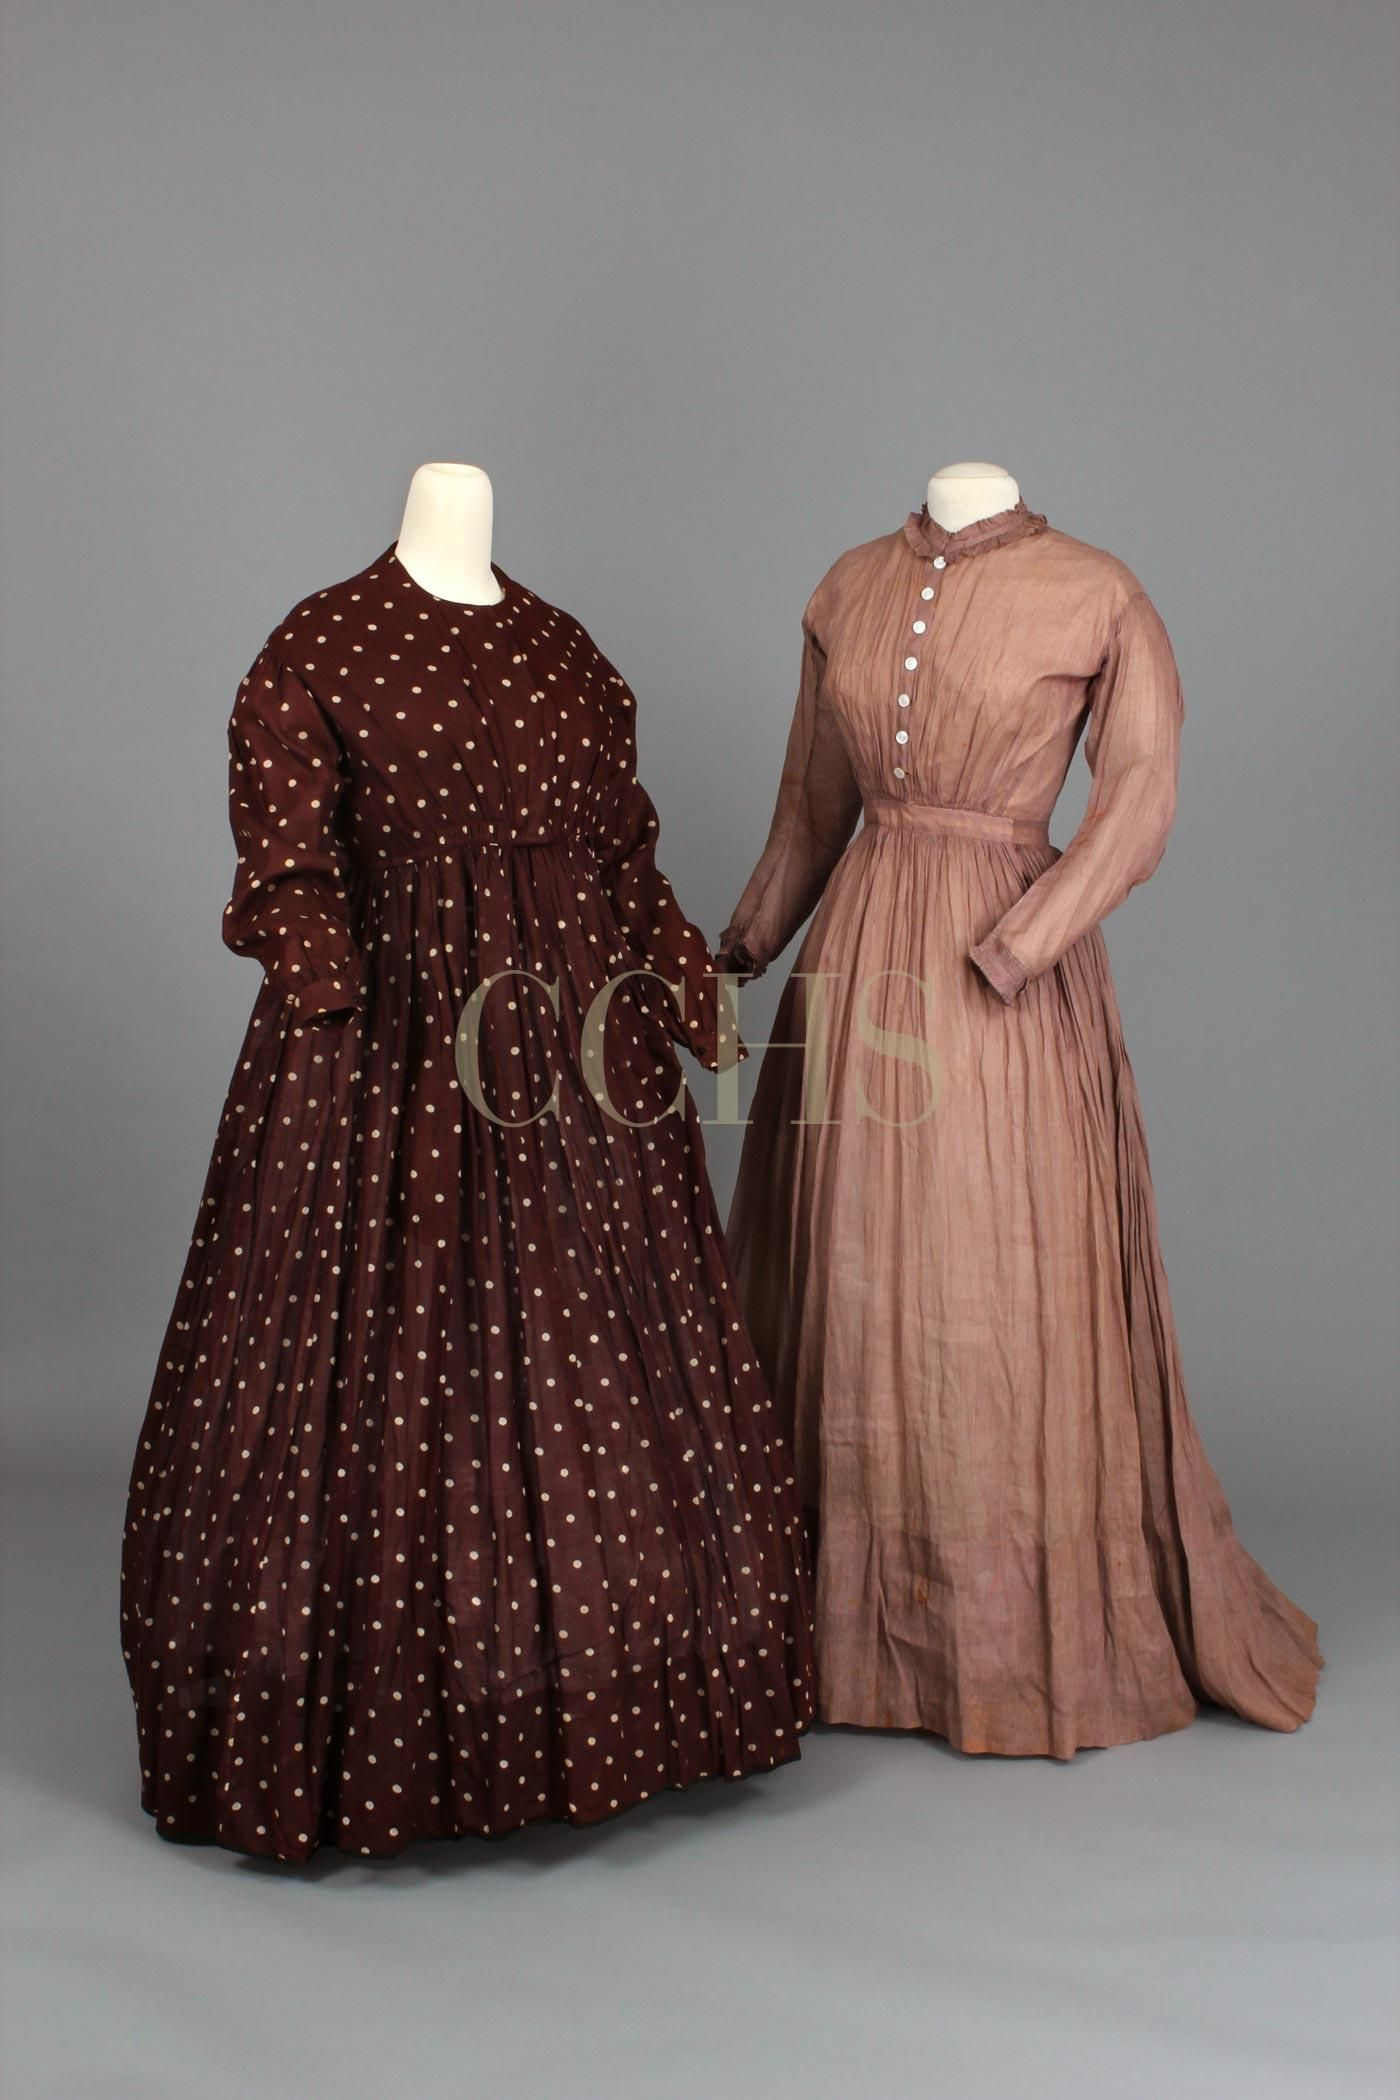 Work Dresses 1860 1870 Cchs Clf20 And 1982 5 3